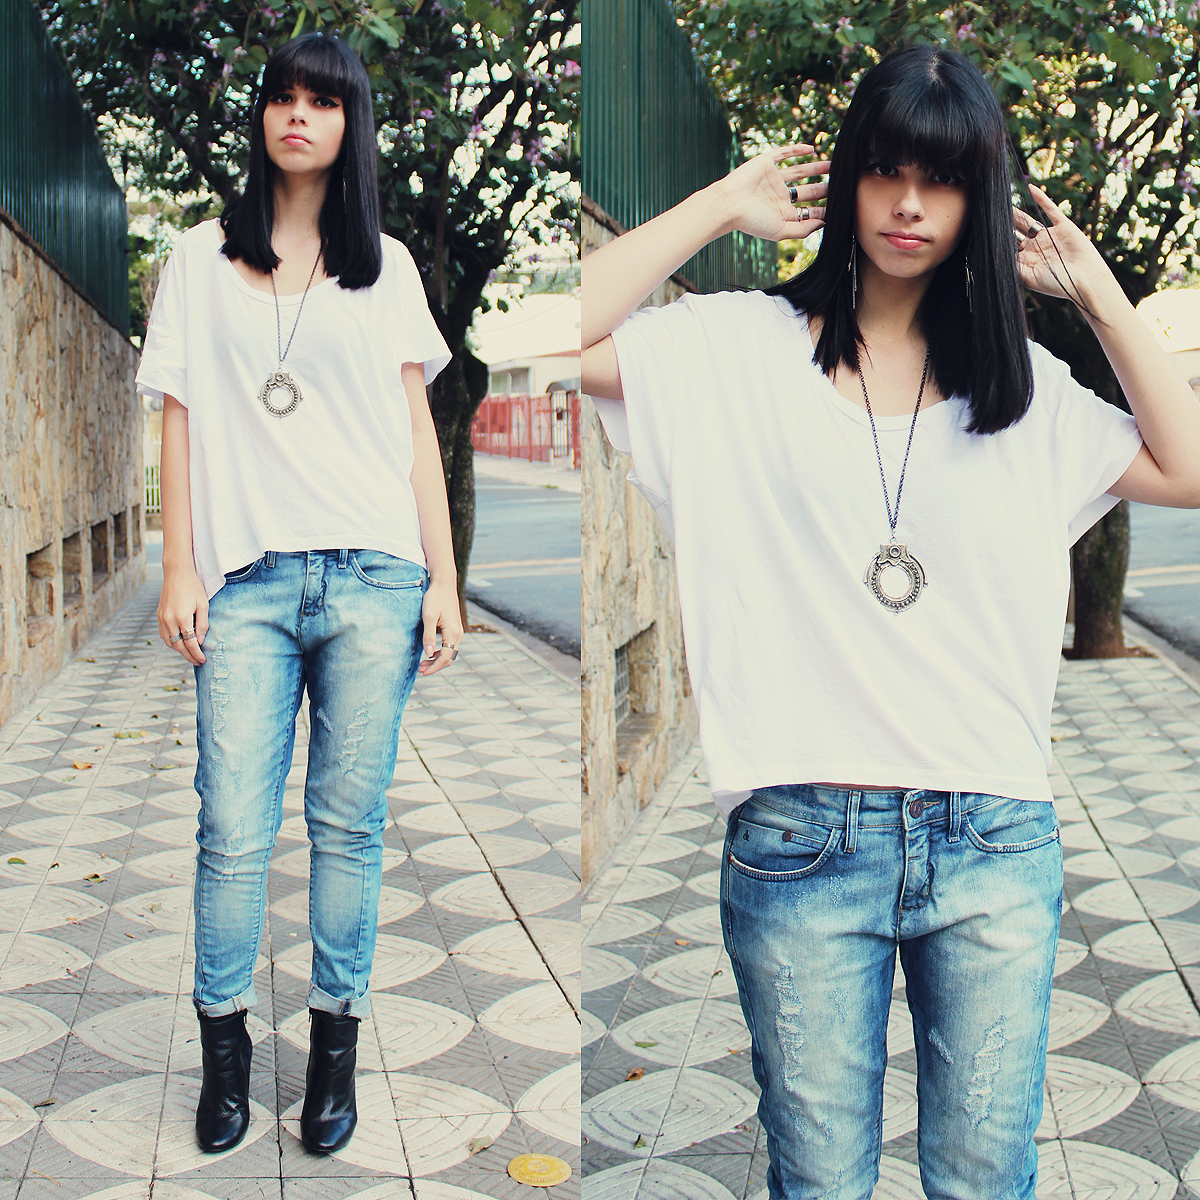 Black t shirt light blue jeans - Make A White Crew Neck Tee And Light Blue Jeans Your Outfit Choice To Effortlessly